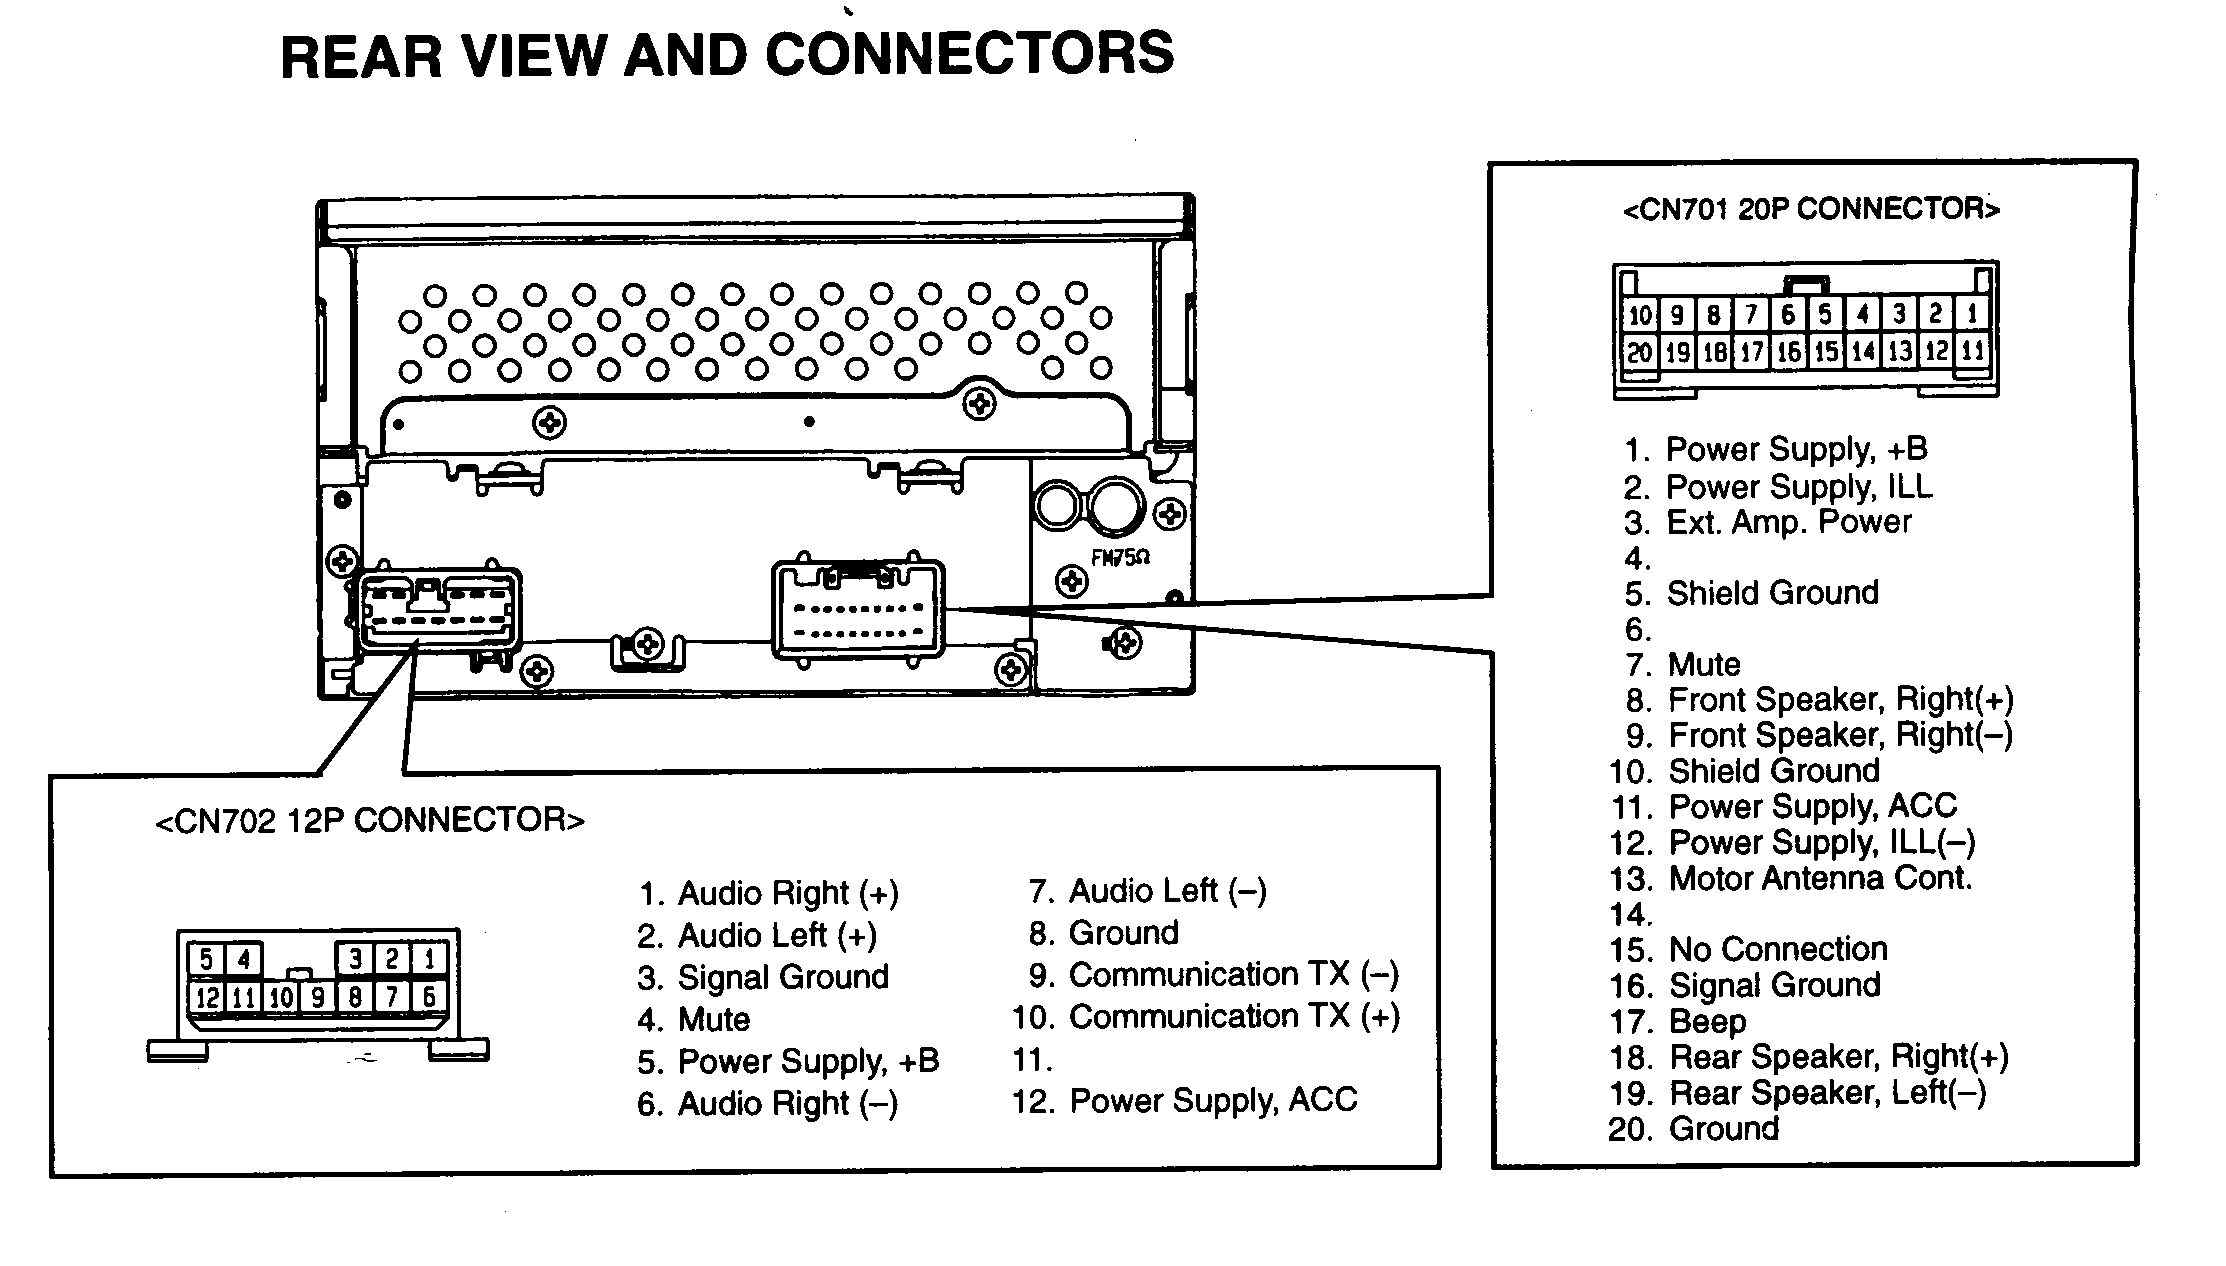 94 Gmc Sierra Speaker Wiring Diagram Simple Radio Car Stereo Help Wire Color Code Diagrams And Motorcycle Transmission